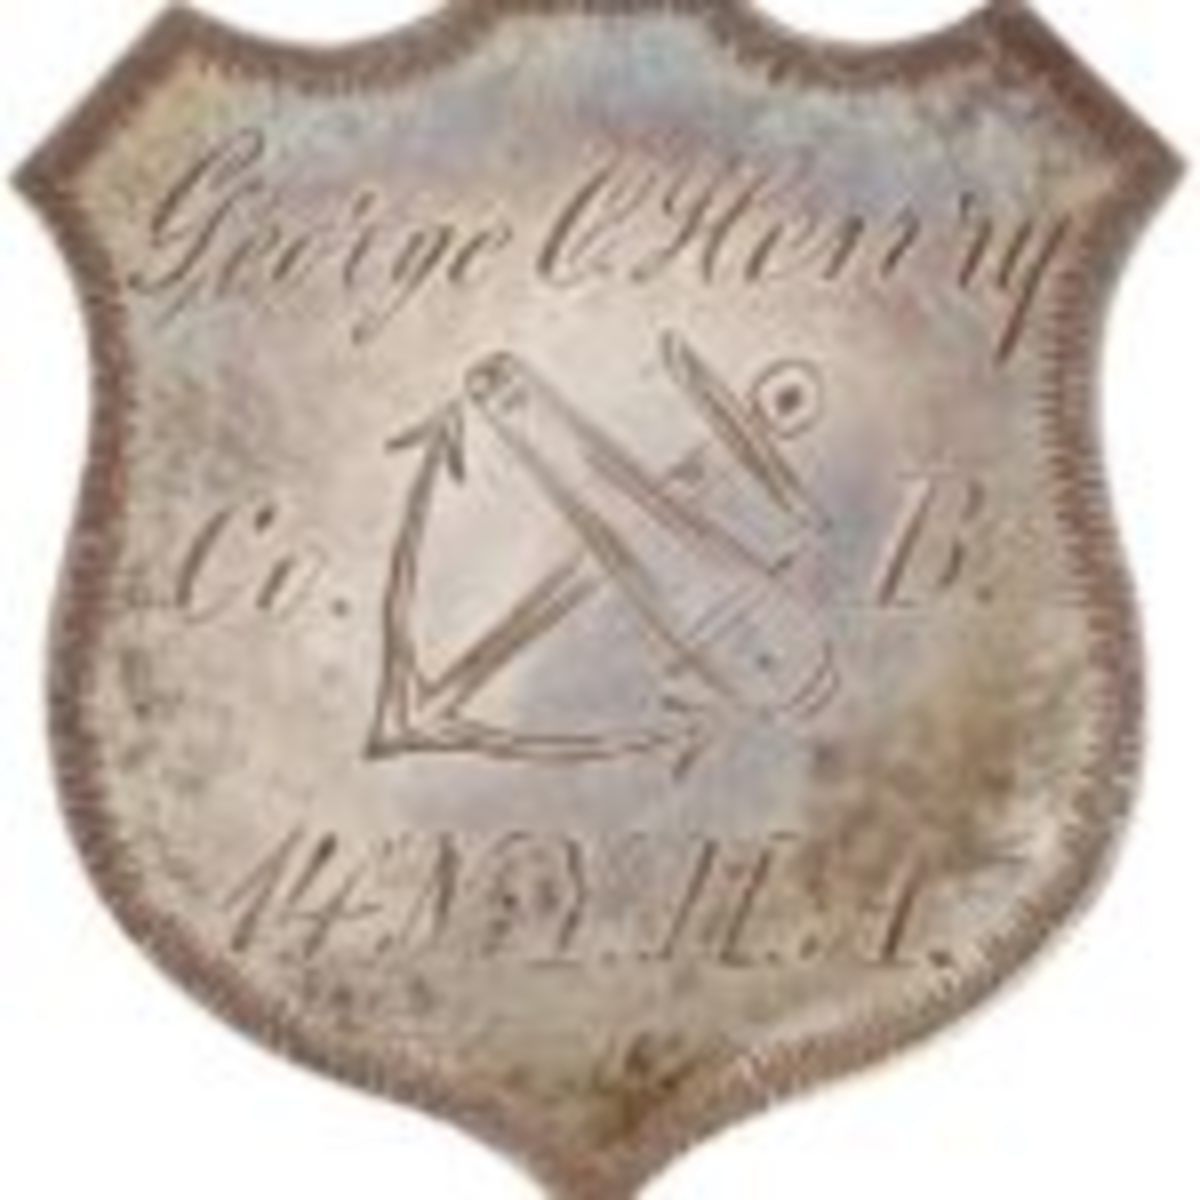 Rare beautiful silver Civil War ID badge belonging to George C. Henry of the 9th Corps. The Corps insignia of crossed cannon barrel and anchor is beautifully engraved. It sold through Heritage Auctions for $2,510 in November 2008. Henry was severely wounded at Spotsylvania.